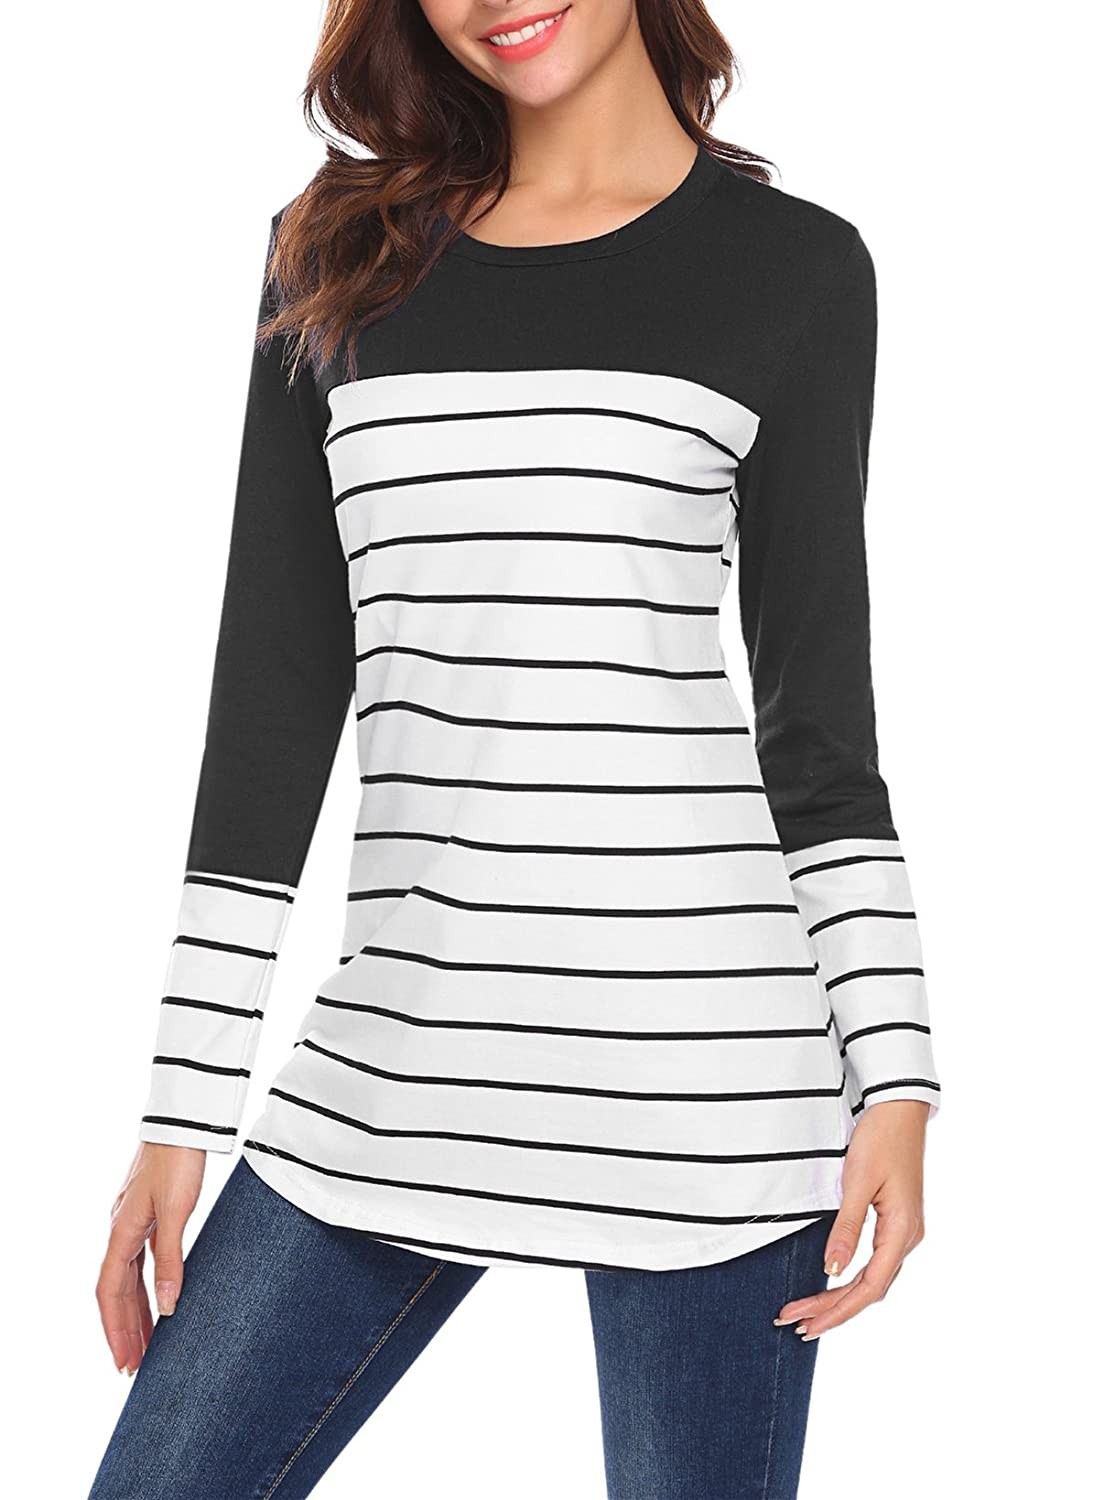 be3ca7cac72 Kancystore Women s Color Block Striped Tunic Tops Long Sleeve Back Button  Stripe T Shirts Blouses Plus Size (S-3XL) at Amazon Women s Clothing store